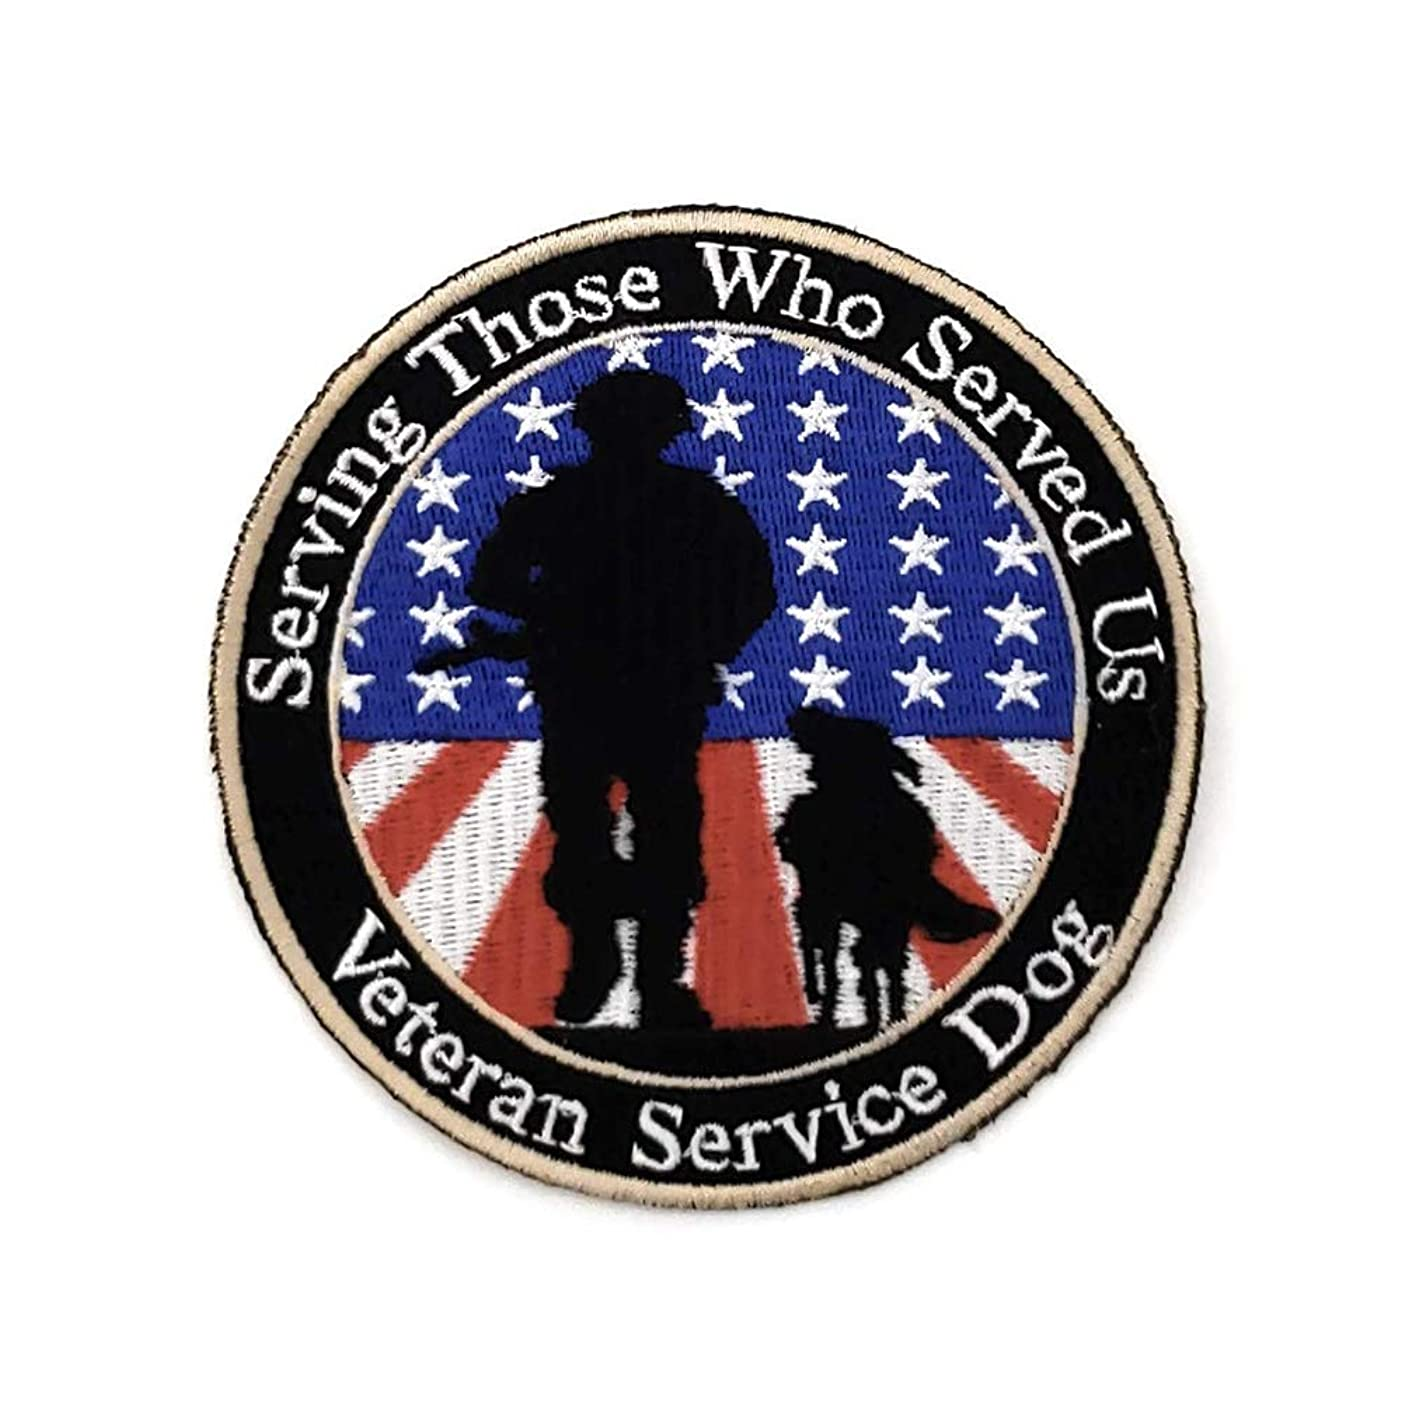 Service Dog Patch,K9 Service Dog Patch for Dogs Certified Service Dog DO NOT PET Removable Patch for Service Dog Harnesses Tactical Military Patches,Veteran Service Dog Embroidered Morale Patch.